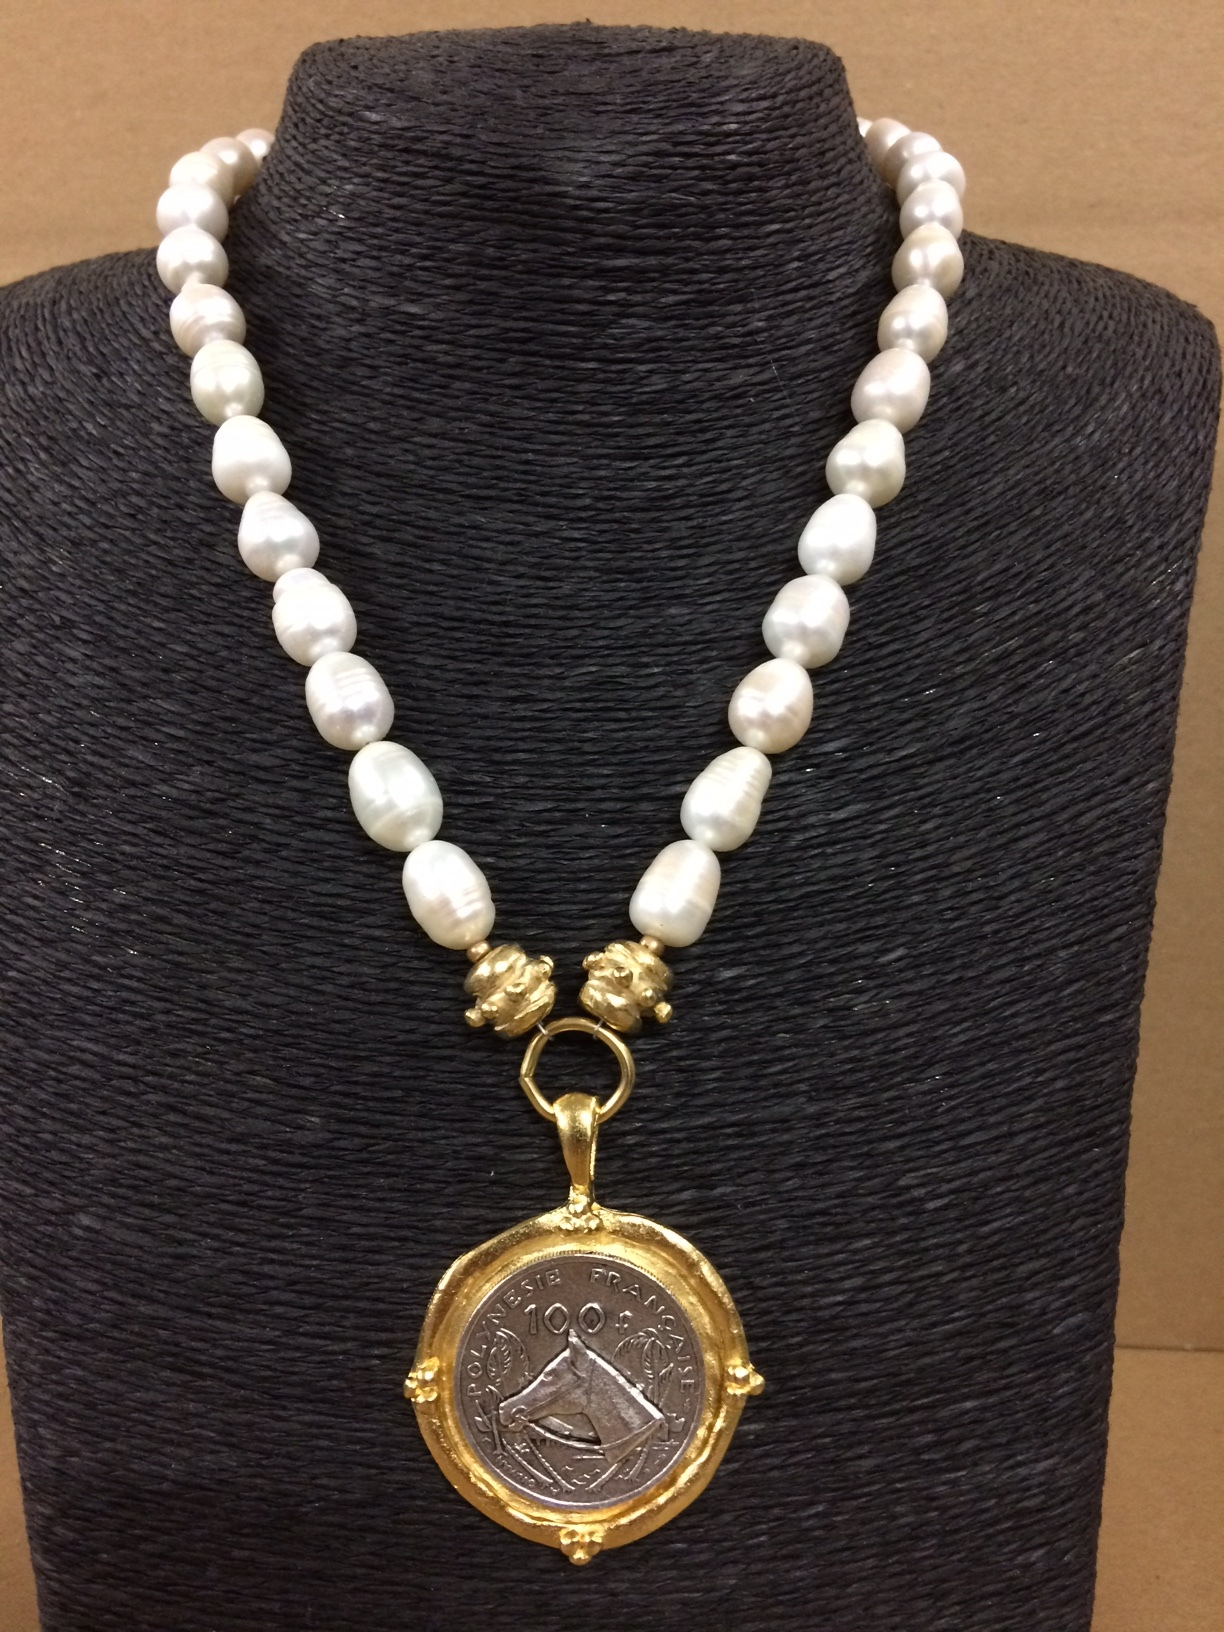 susan-shaw-equestrian-necklace-pearls-with-horse-head-medallion-1